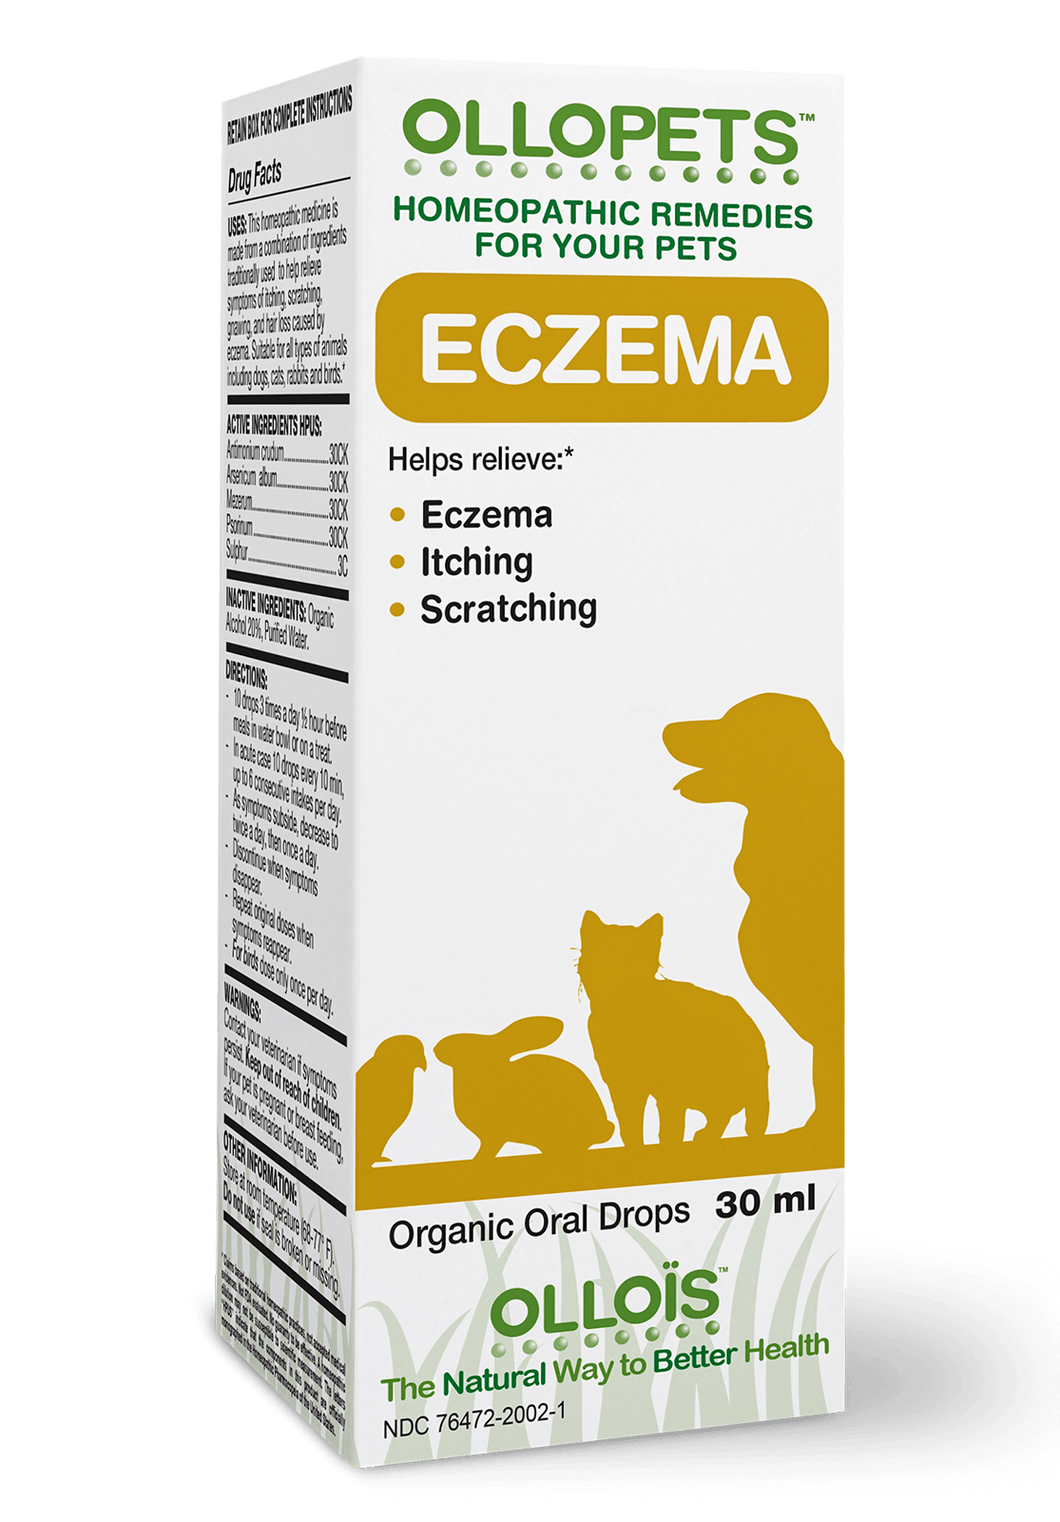 Ollopets Eczema - Homeopathic Remedy for Pets